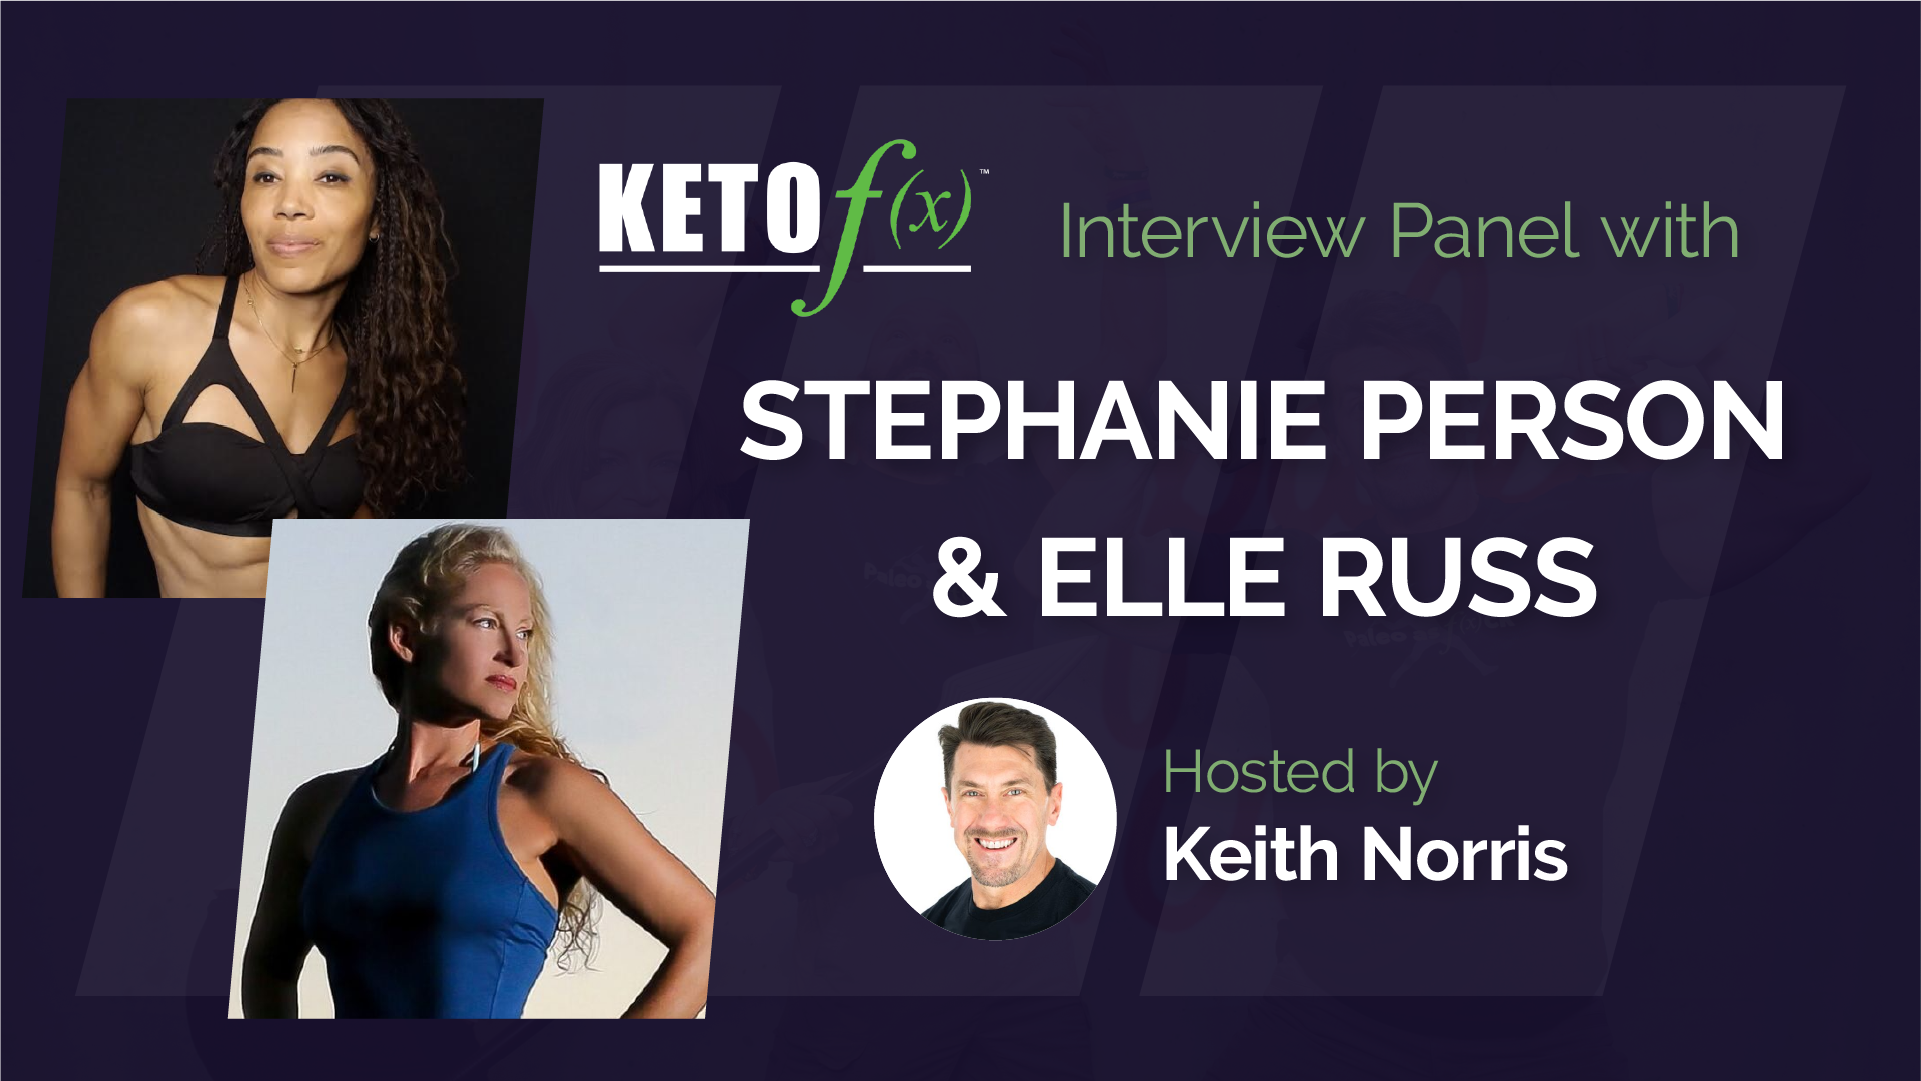 Keto f(x)™ Masterclass with Stephanie Person and Elle Russ